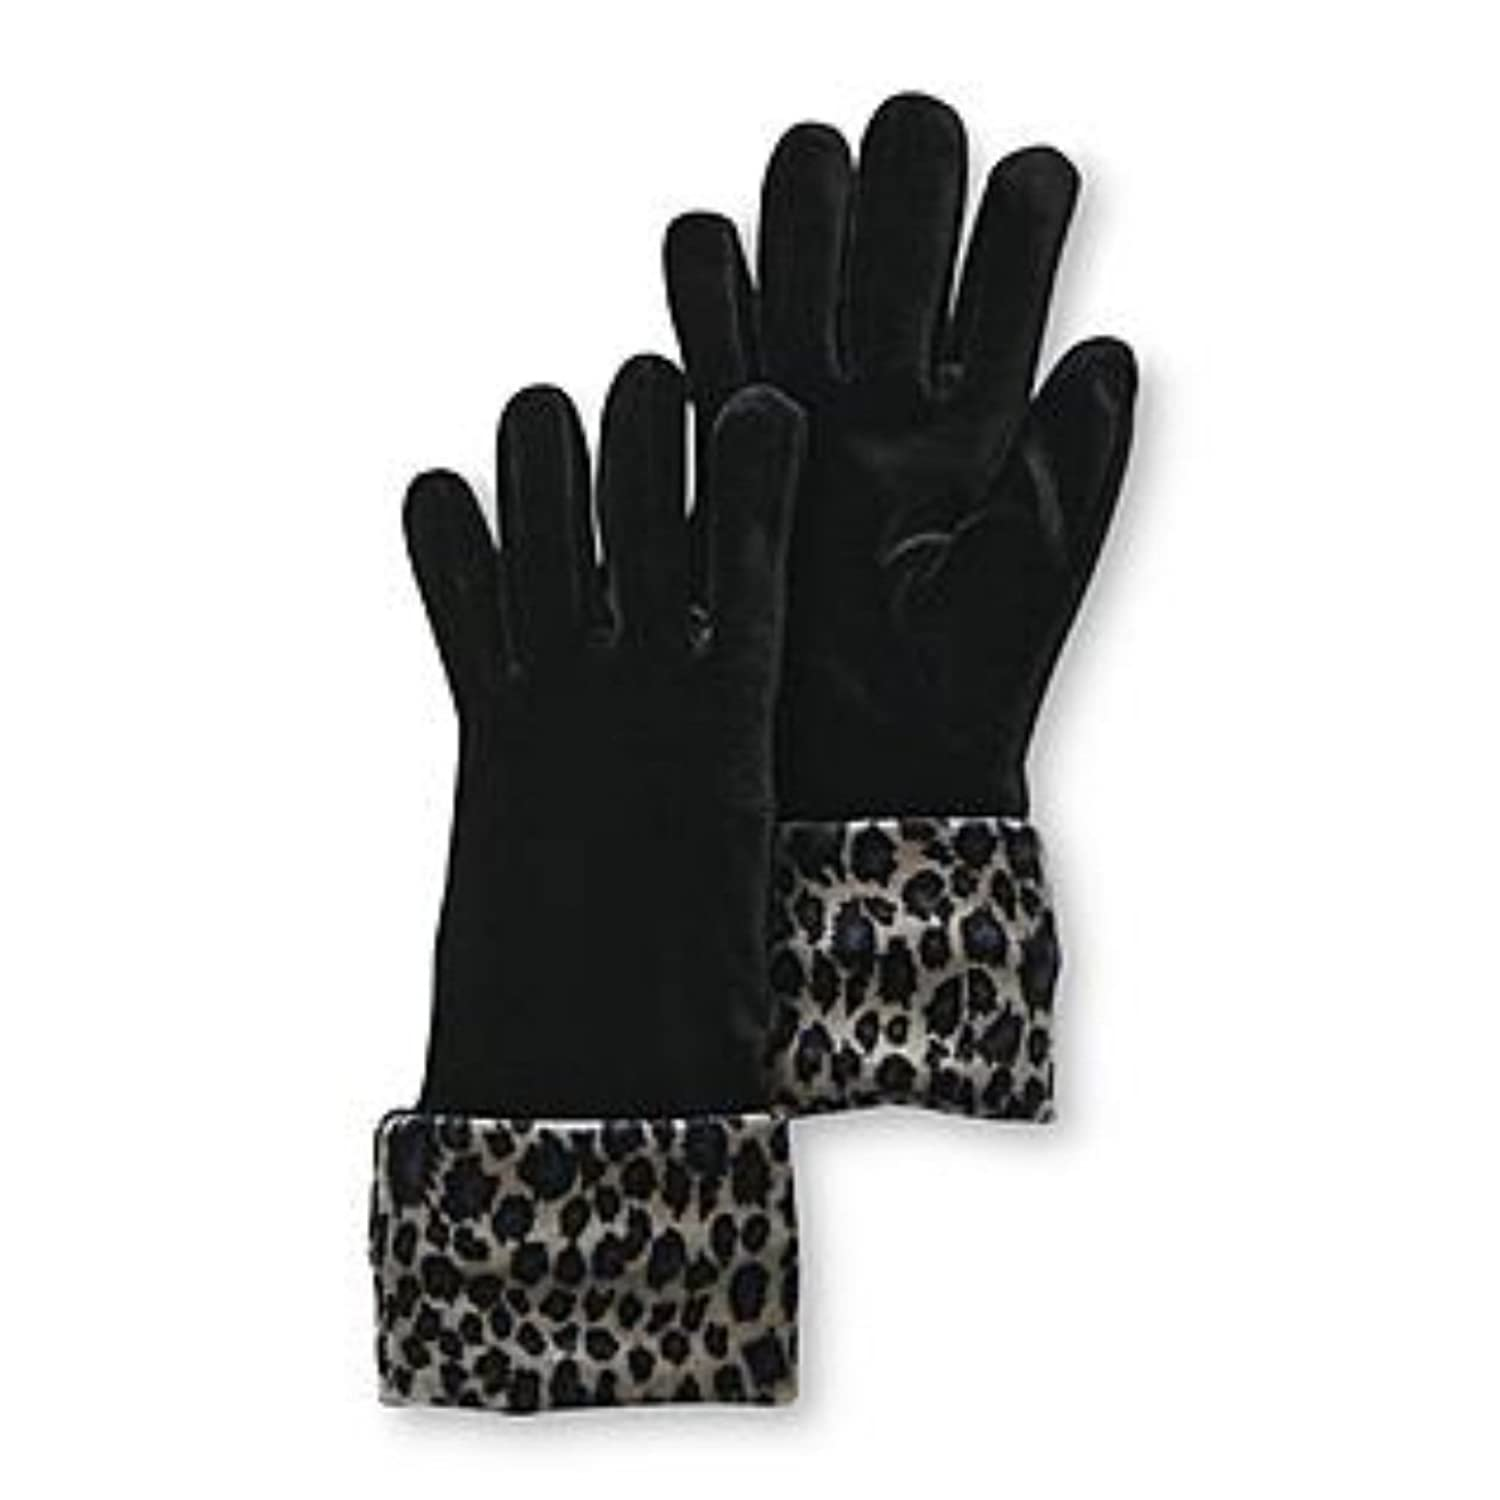 Black gloves with leopard trim - Fownes Womens Black Velvet Gloves With Silver Leopard Print Cuffs At Amazon Women S Clothing Store